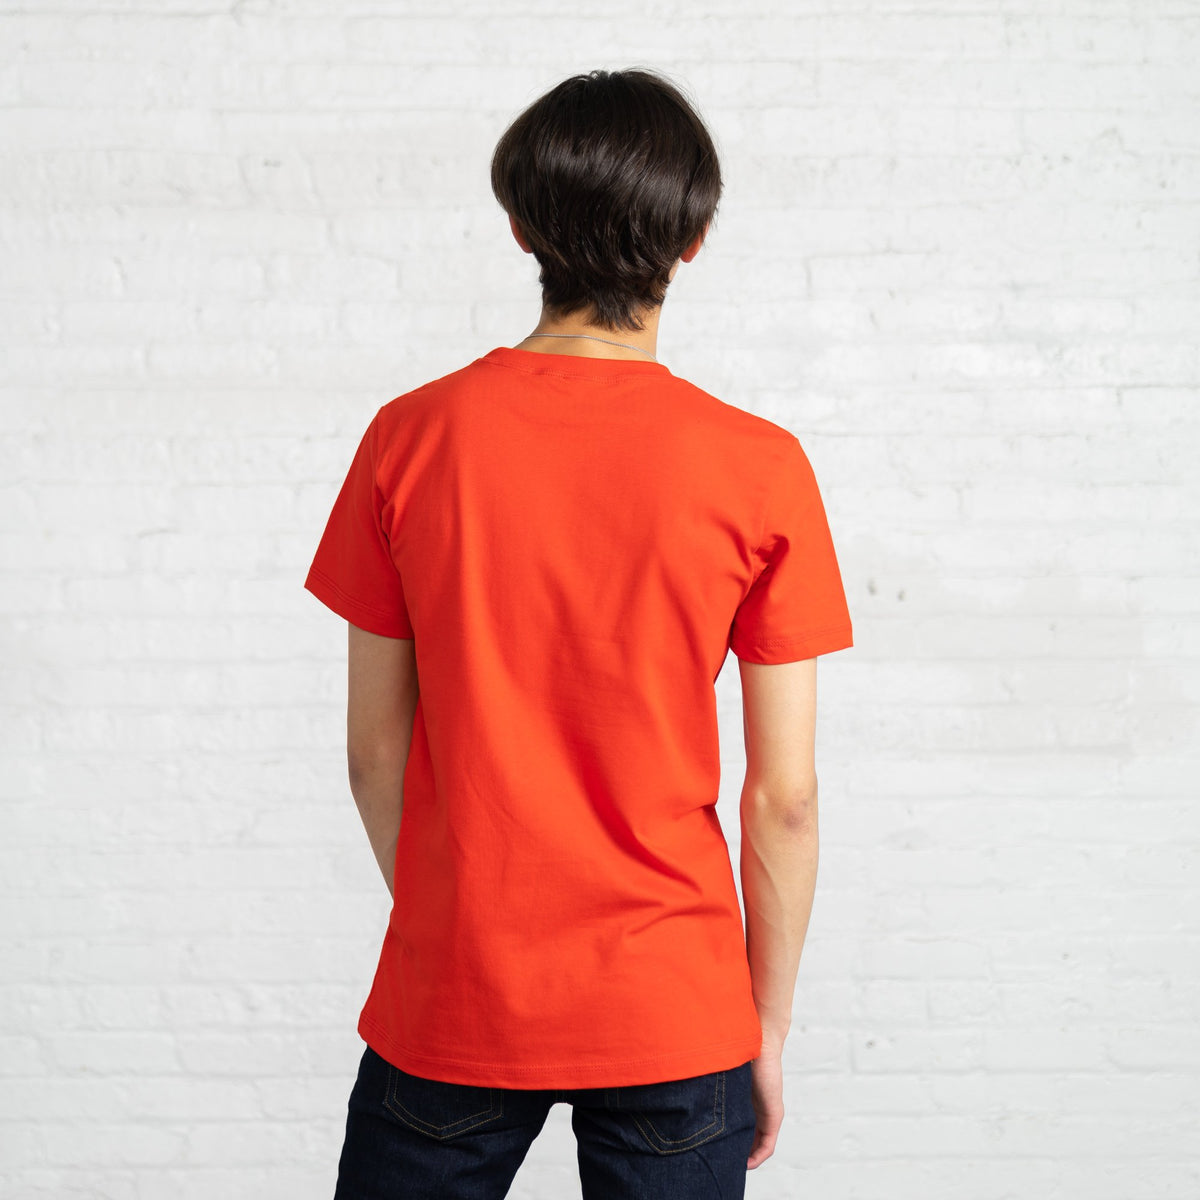 Fitted Color:Bright Red Combed Cotton Men's T-shirts